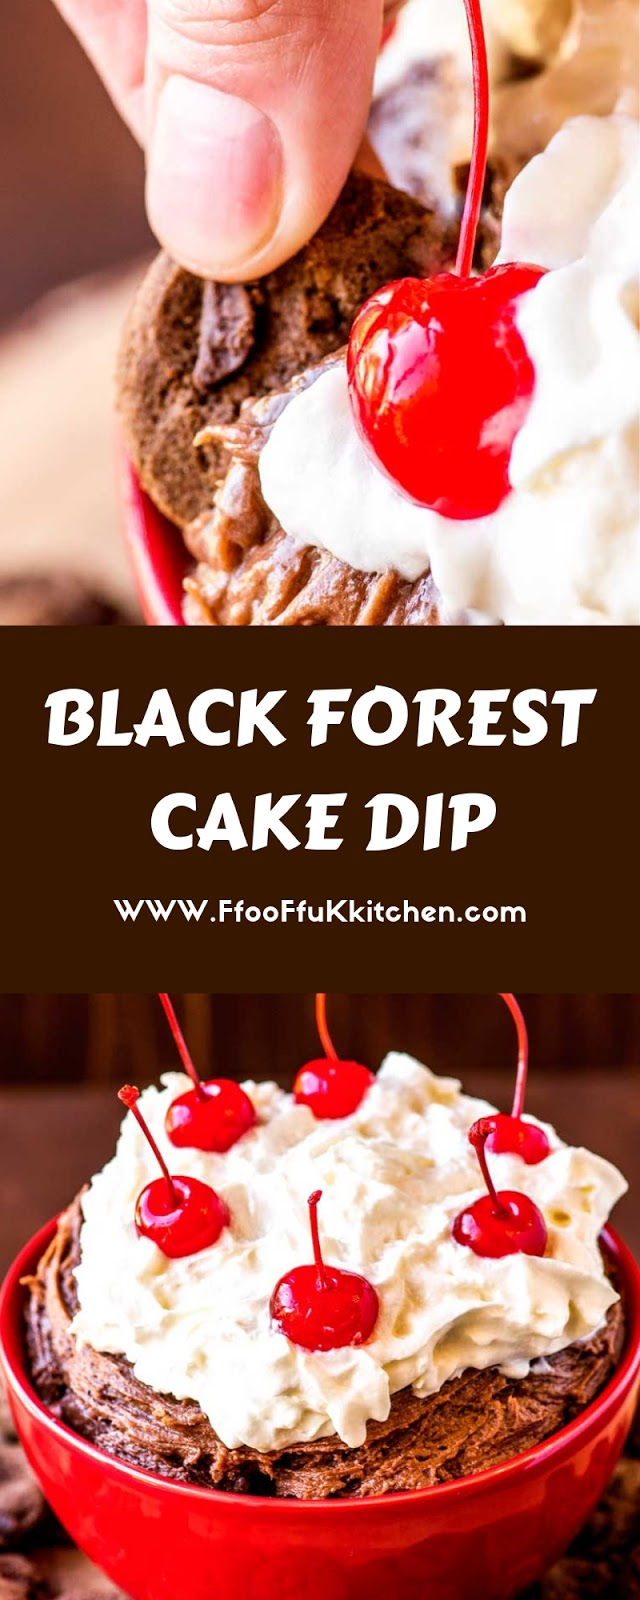 BLACK FOREST CAKE DIP